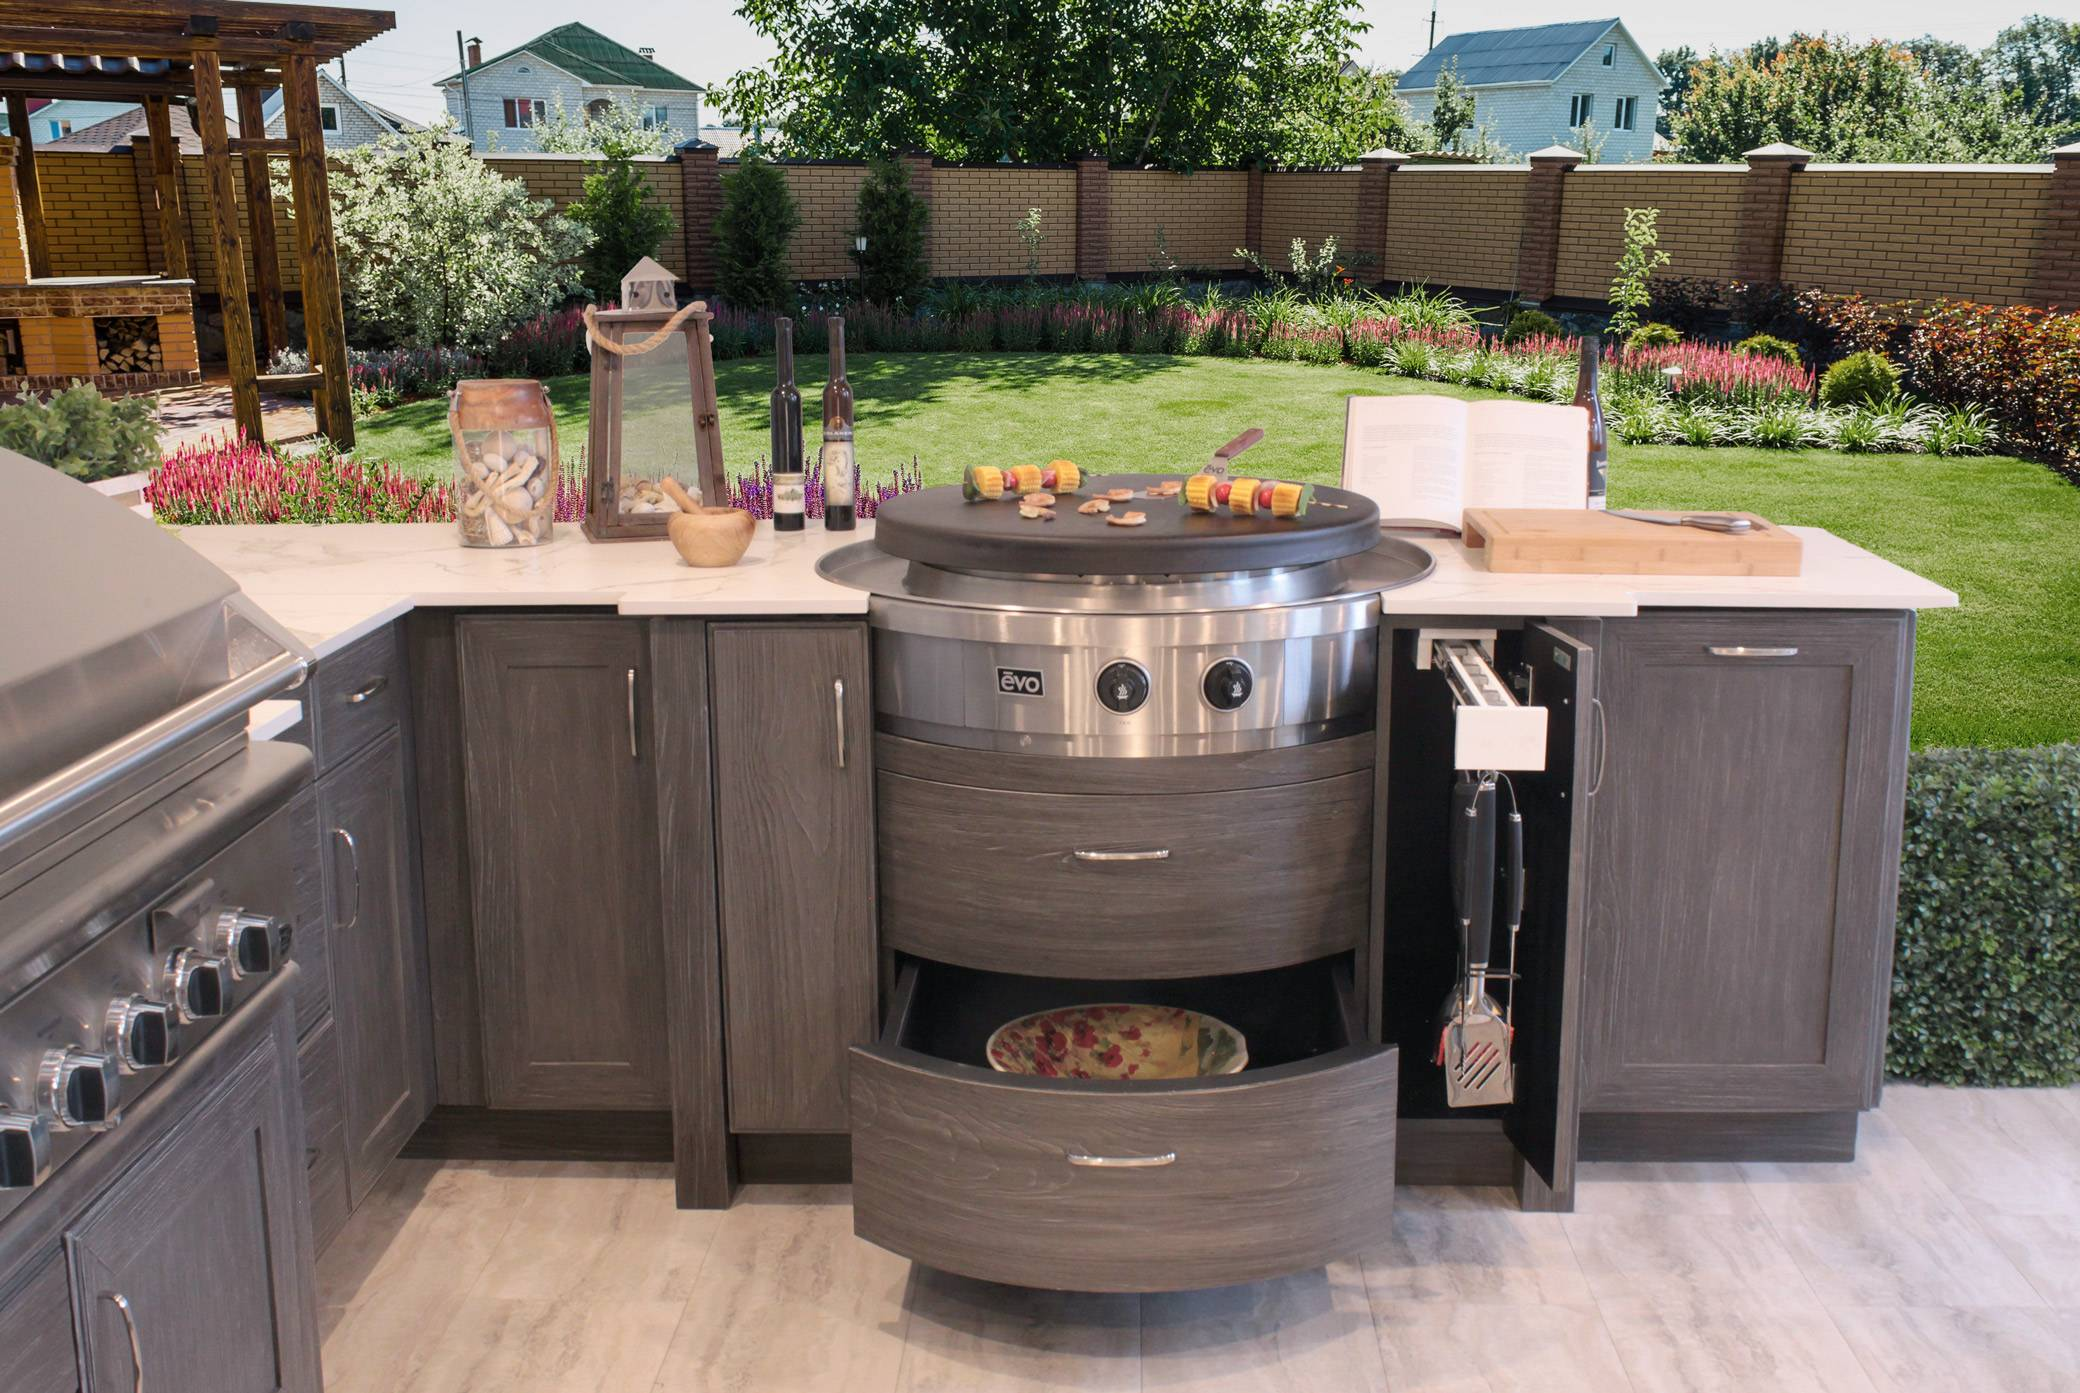 NatureKast Cabinetry